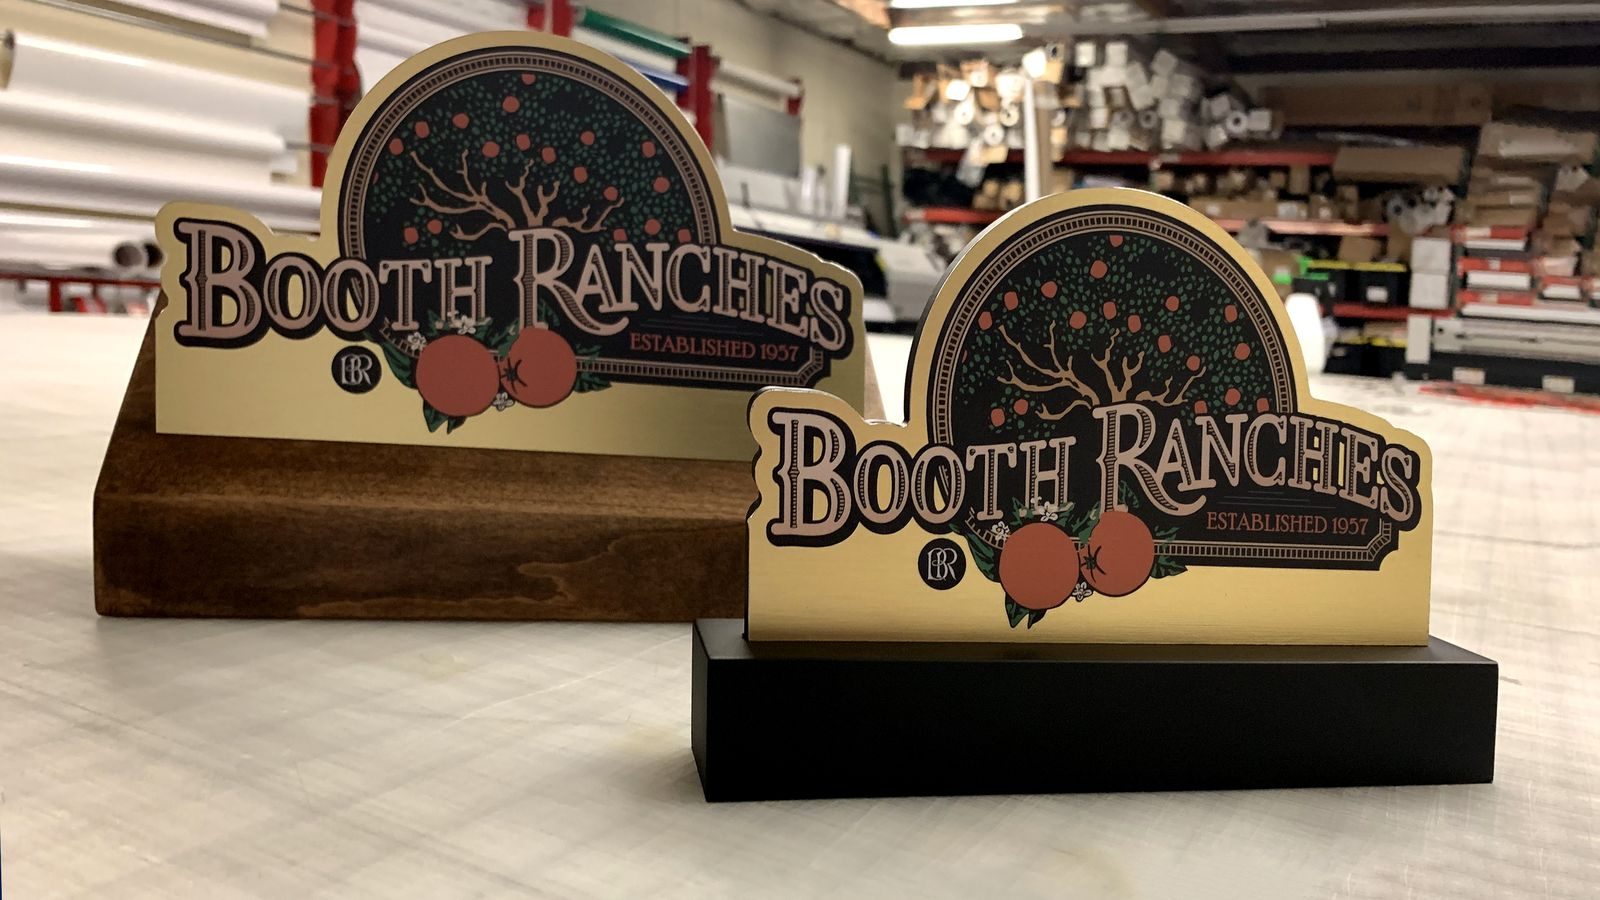 Booth ranches tabletop stand